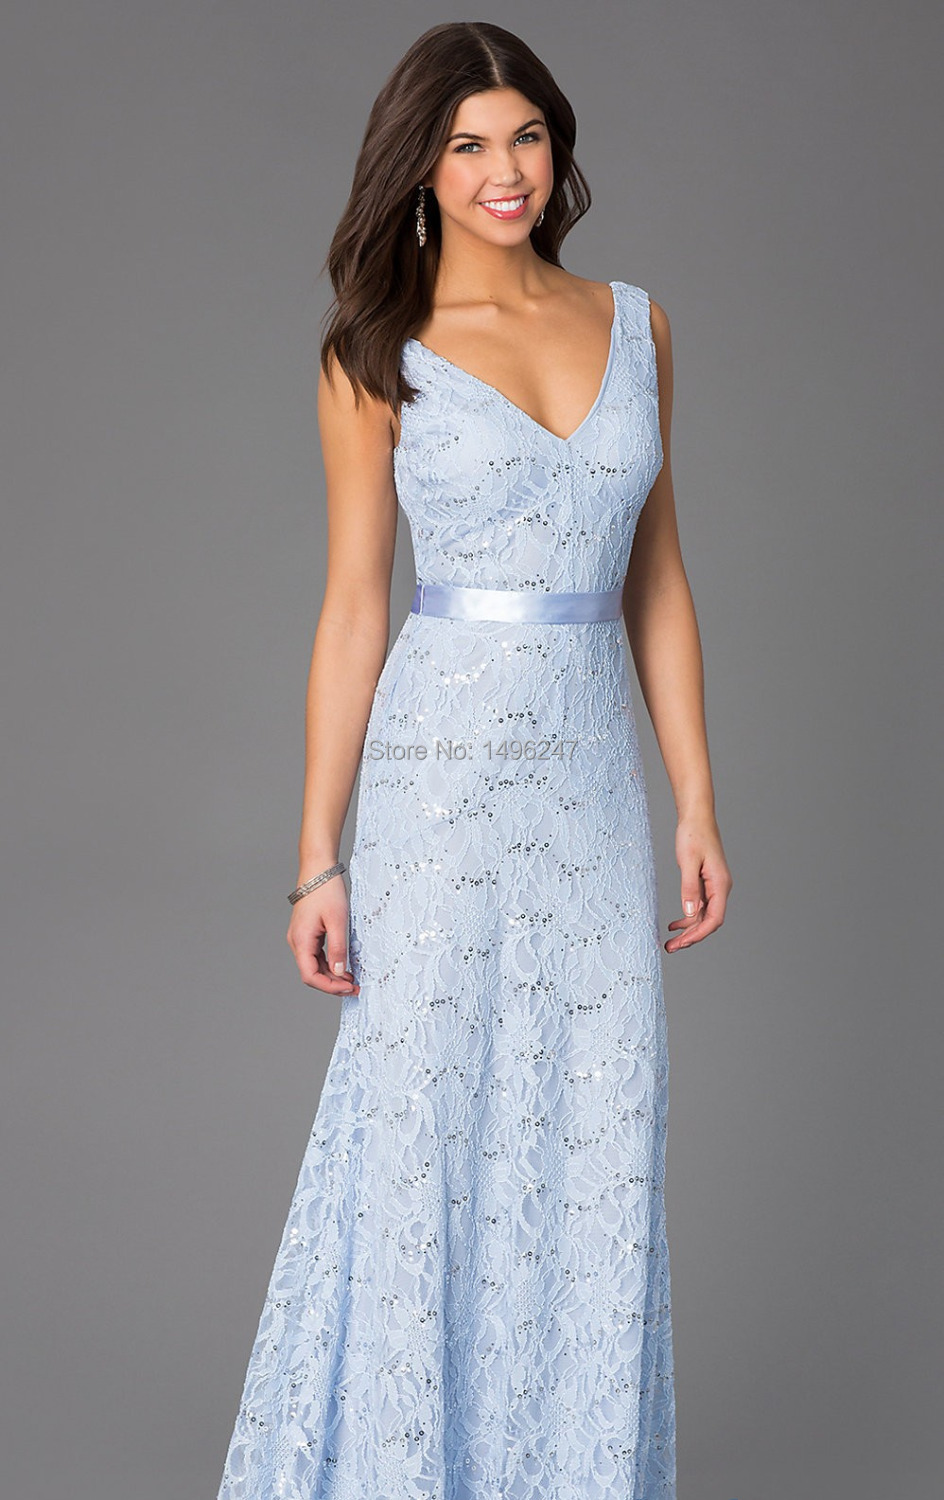 Online get cheap tea length bridesmaid dresses aliexpress high quality light blue lace a line bridesmaid dresses with sashes v neck open back tea ombrellifo Image collections